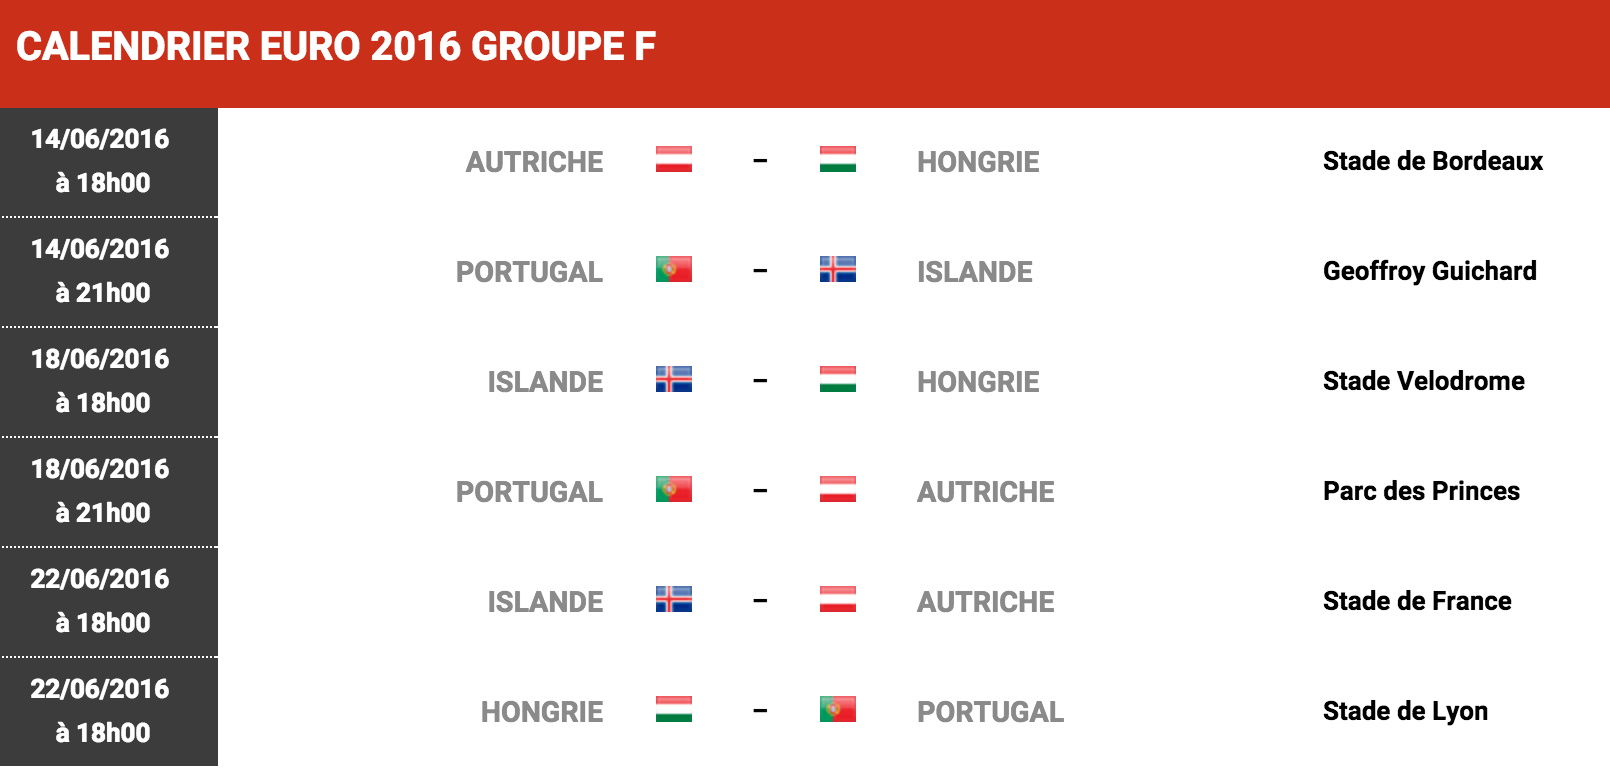 Calendrier Matches Euro 2016 Groupe F Football Sports Le